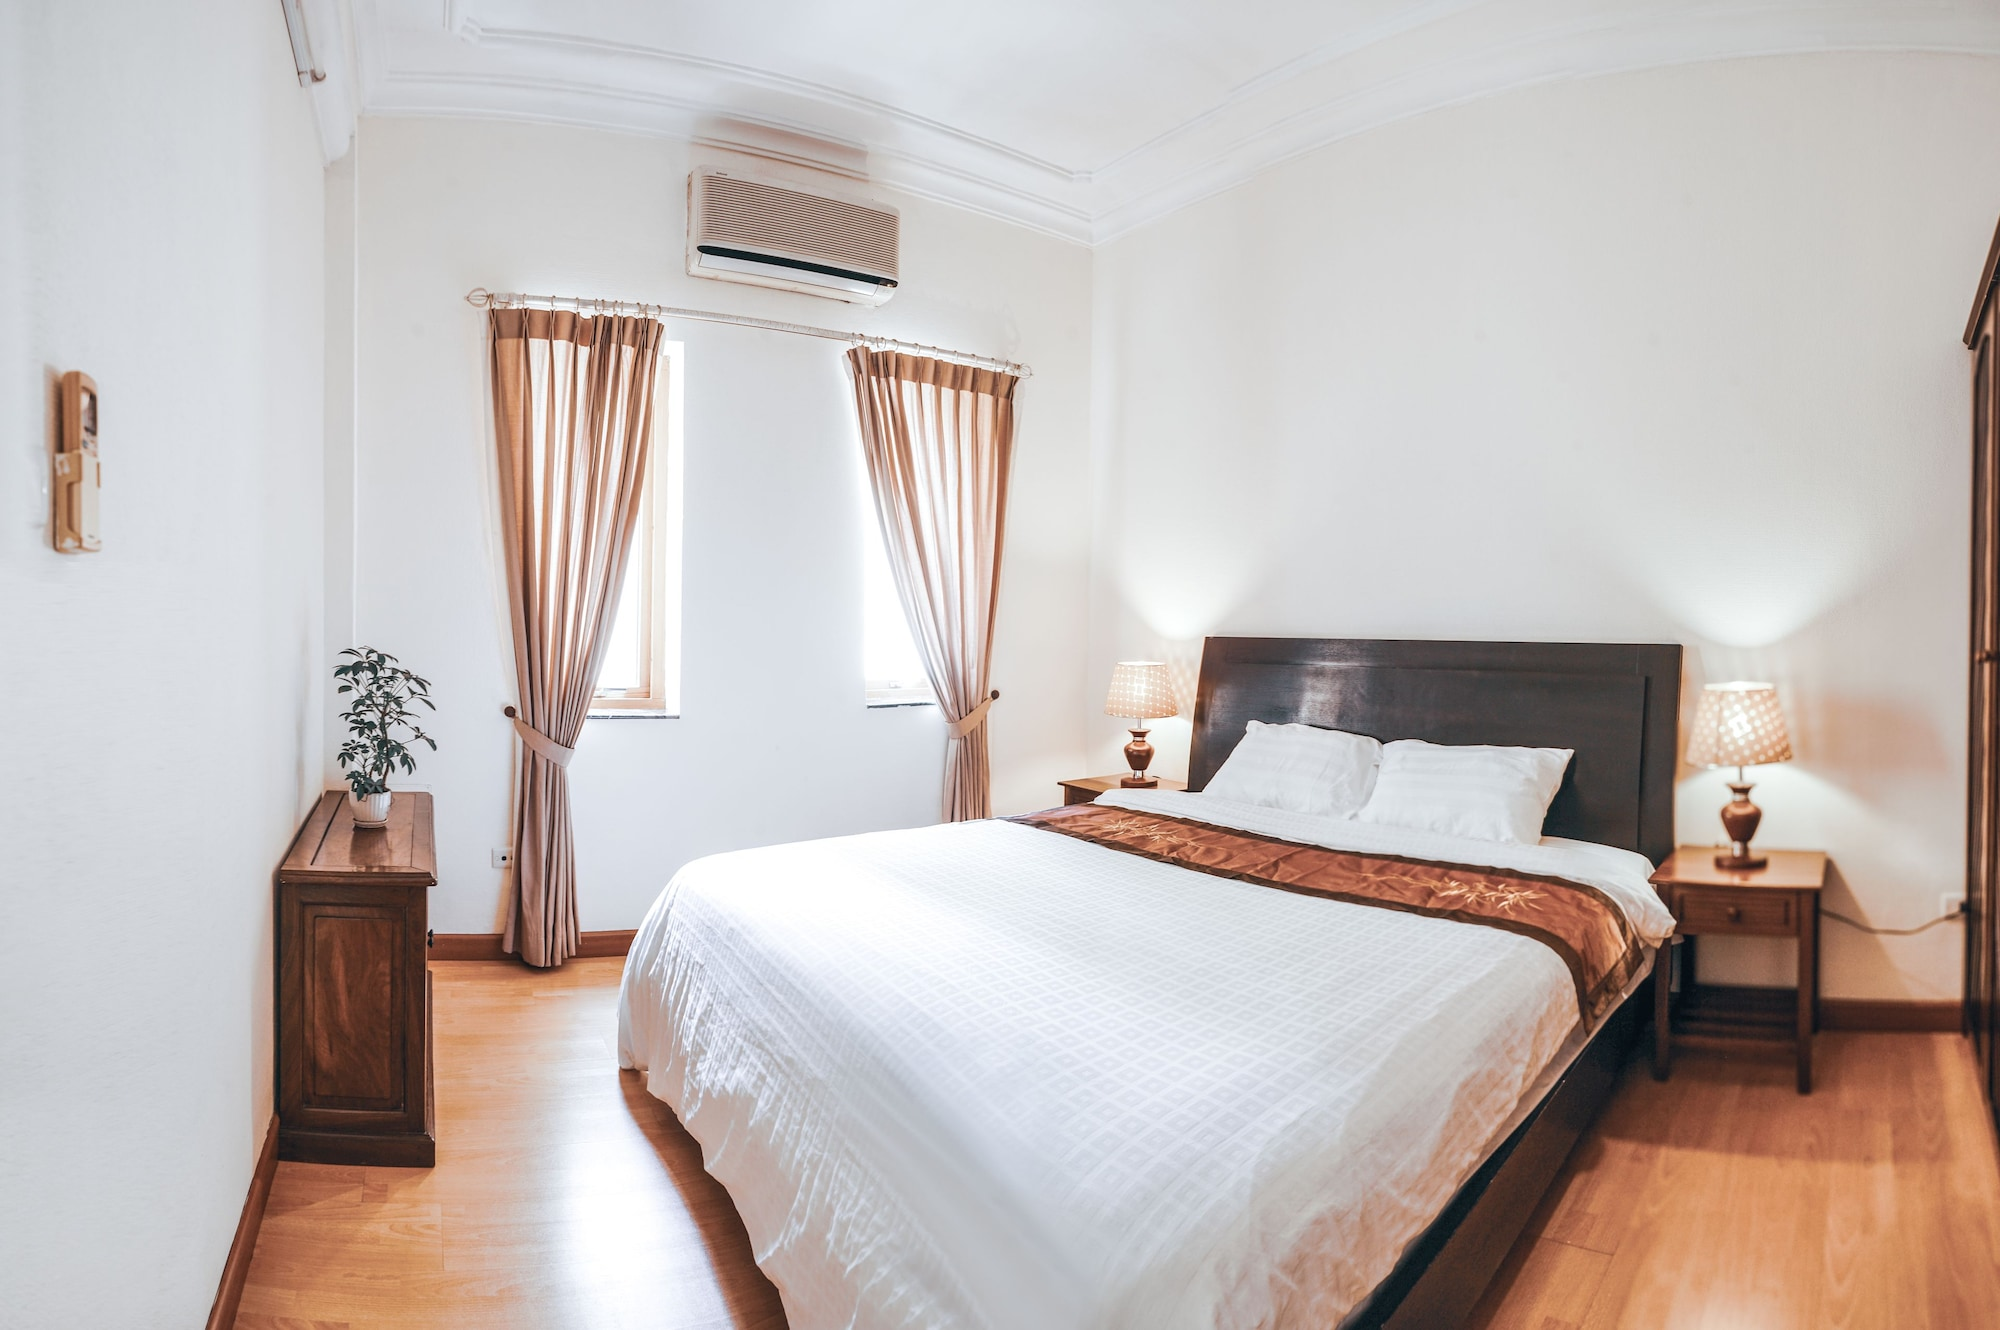 Sunrise Stays Serviced Apartments, Hai Bà Trưng